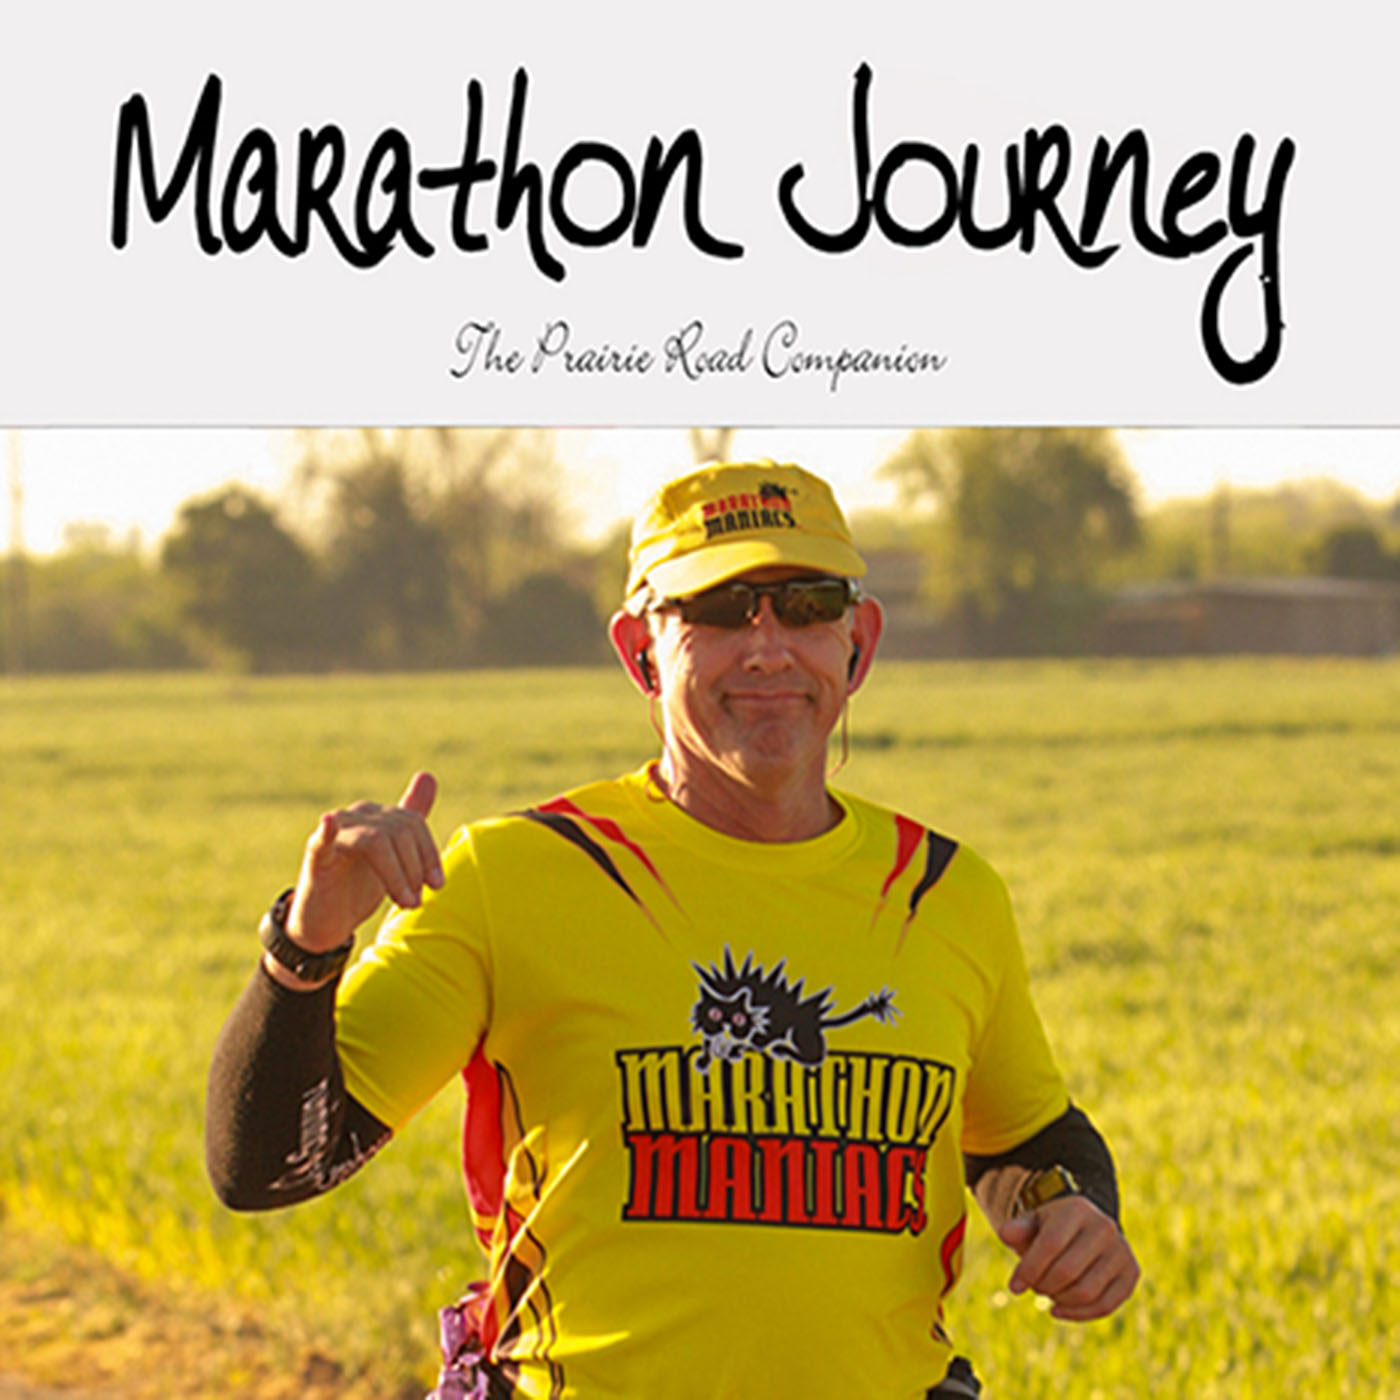 Marathon Journey - The Broadcast - MJTB007 - Training Plans